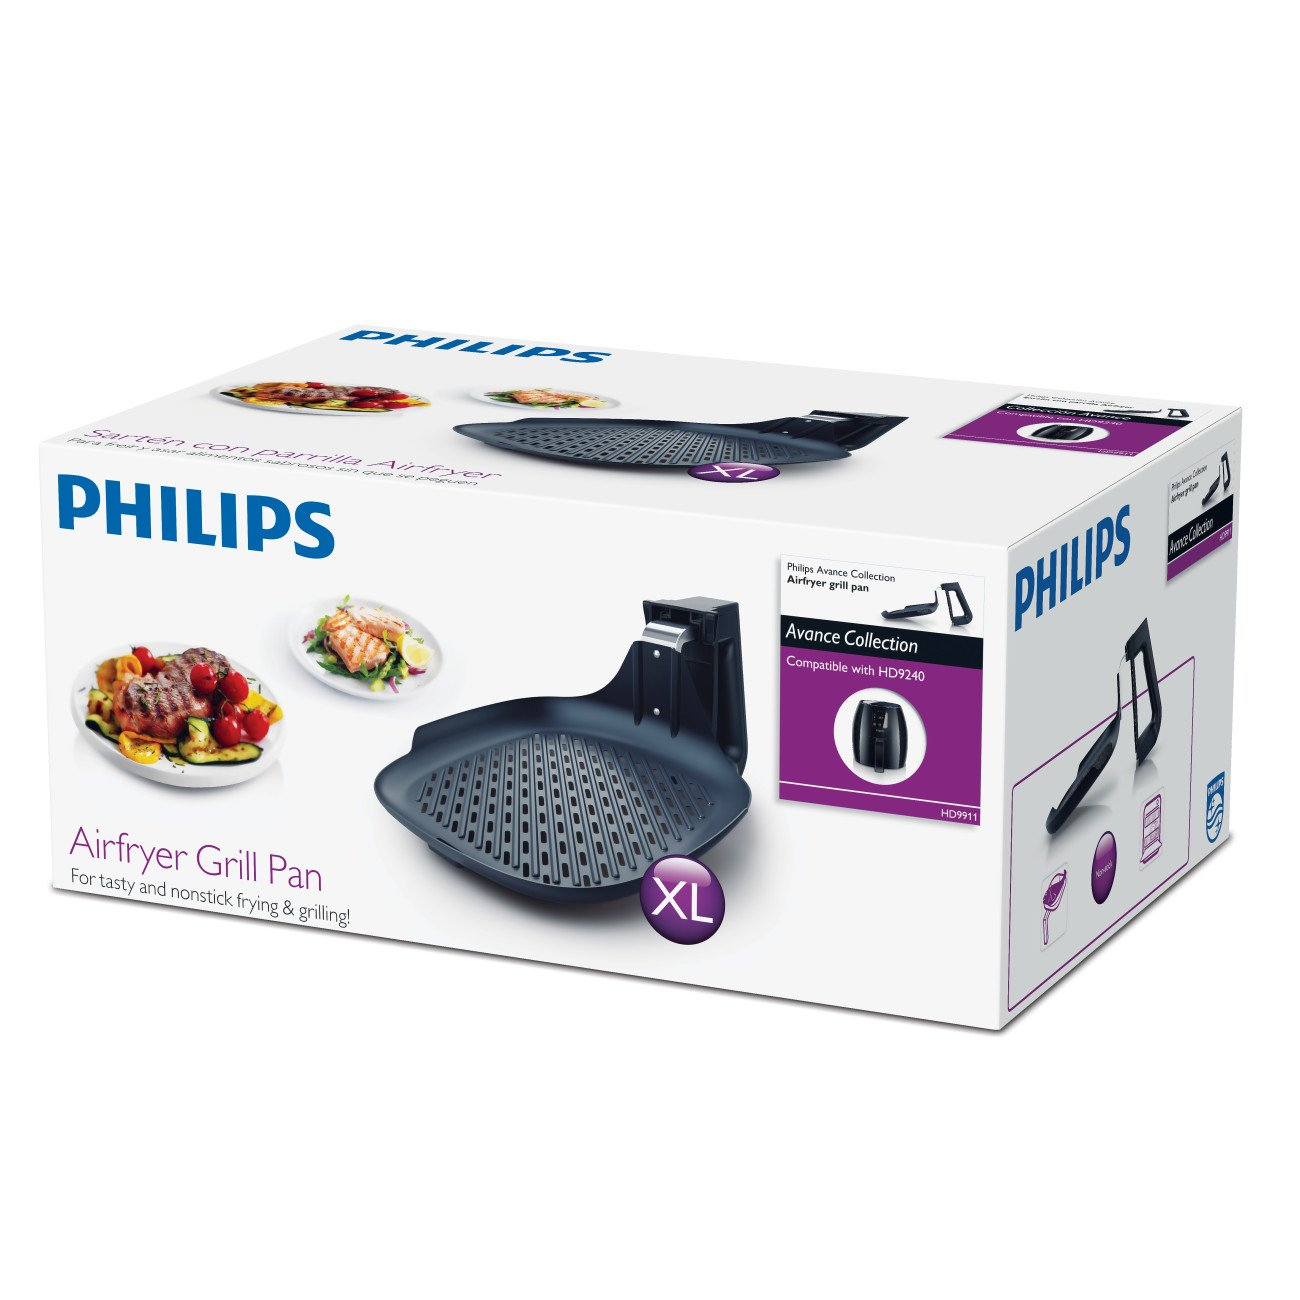 Philips Airfryer Grill Pan- HD9911/90, For HD9240 models by Philips Kitchen